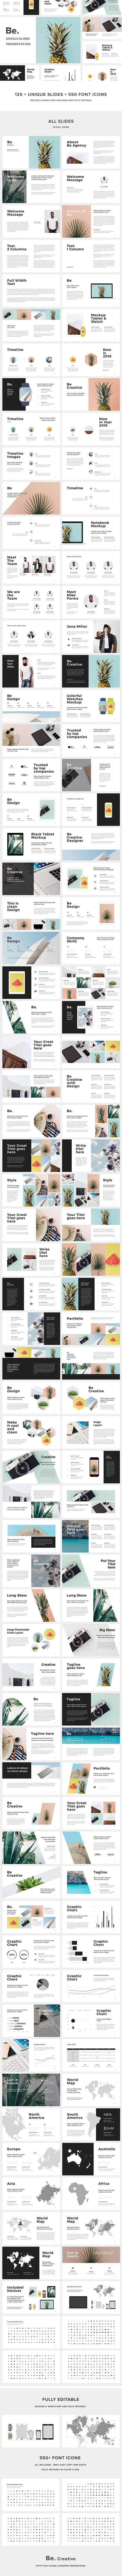 Be. — Google Slides PPTX #mockup #minimal • Download ➝ https://graphicriver.net/item/be-google-slides-presentation/19558658?ref=pxcr